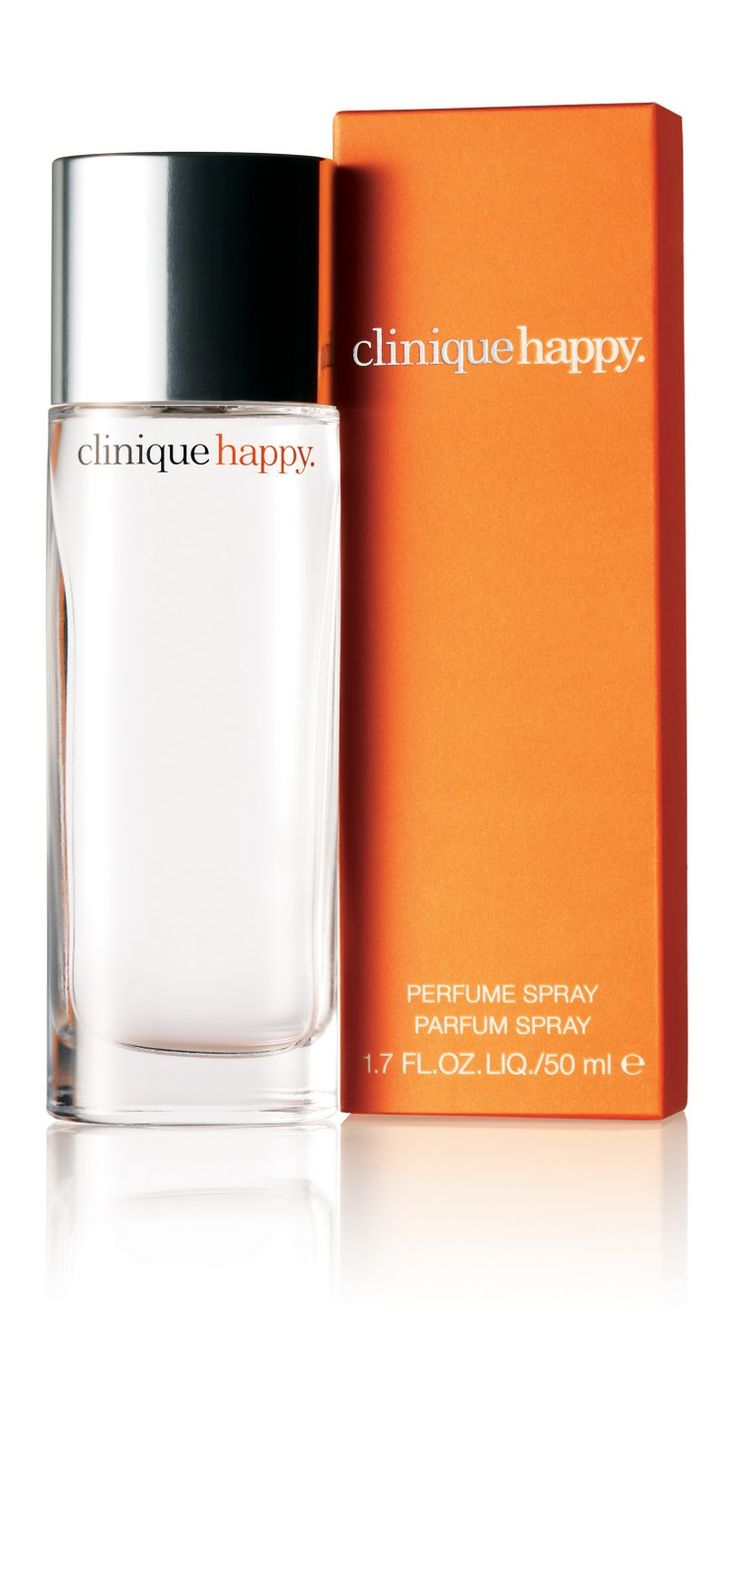 Clinique Happy. A chic, modern, multi-layered floral with sparkling, lingering fragrance of Ruby Red Grapefruit, Boysenberry Bush Flower and Hawaiian Wedding Flower.